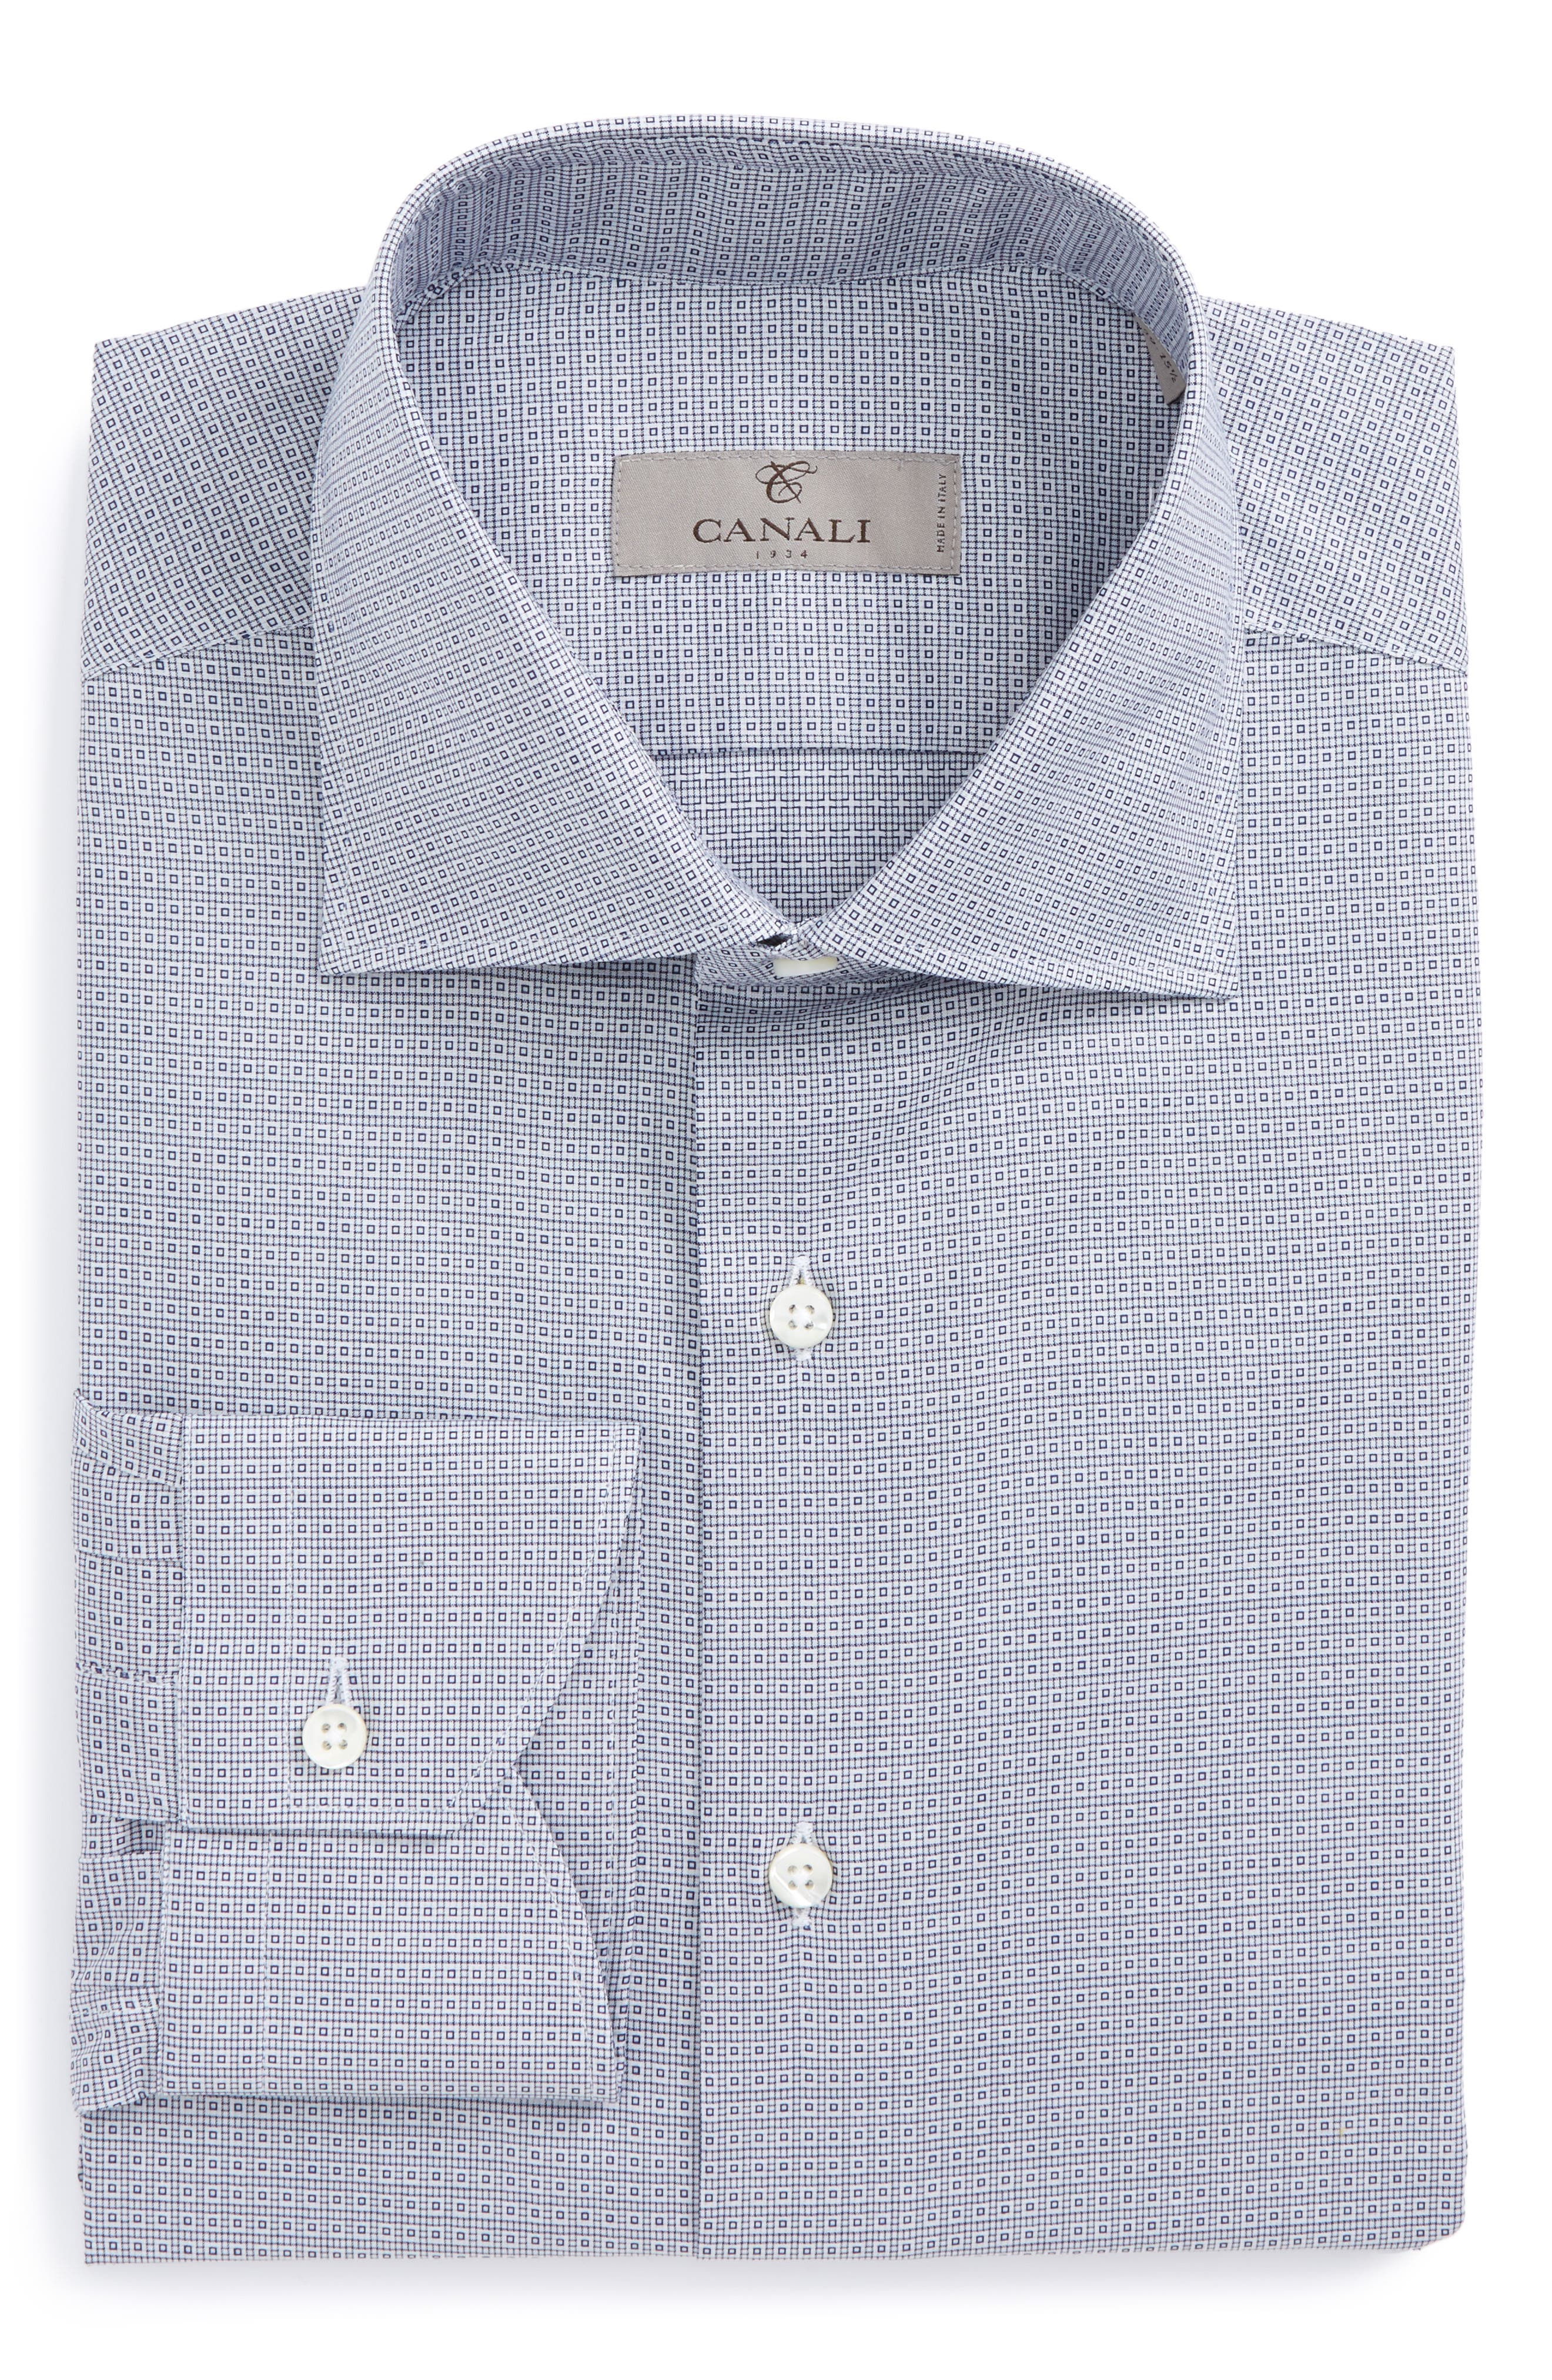 Alternate Image 1 Selected - Canali Regular Fit Geometric Dress Shirt